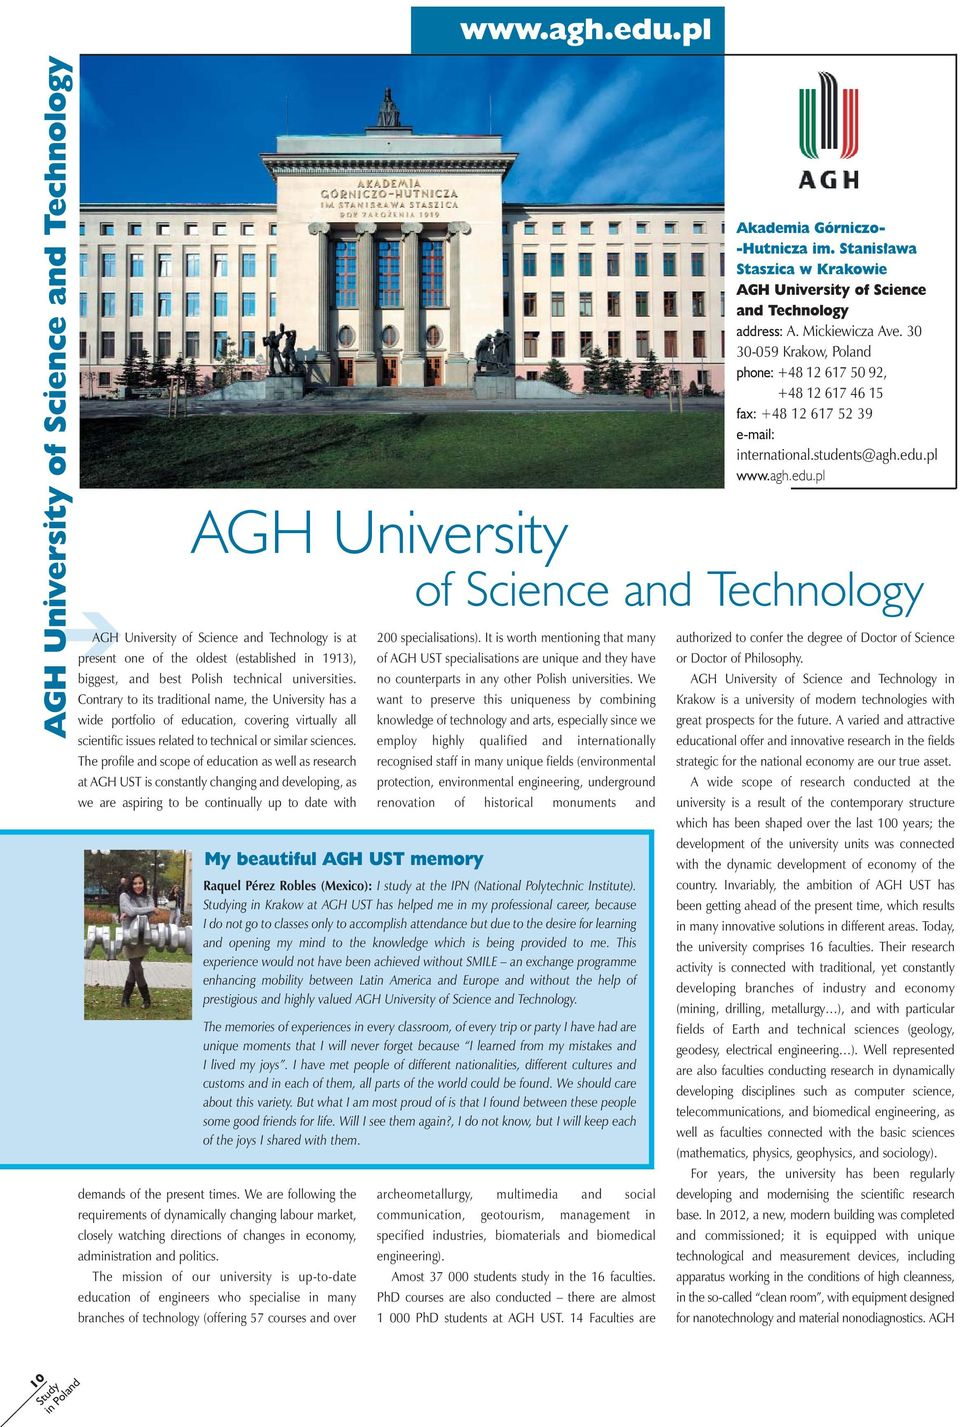 The profile and scope of education as well as research at AGH UST is constantly changing and developing, as we are aspiring to be continually up to date with My beautiful AGH UST memory demands of